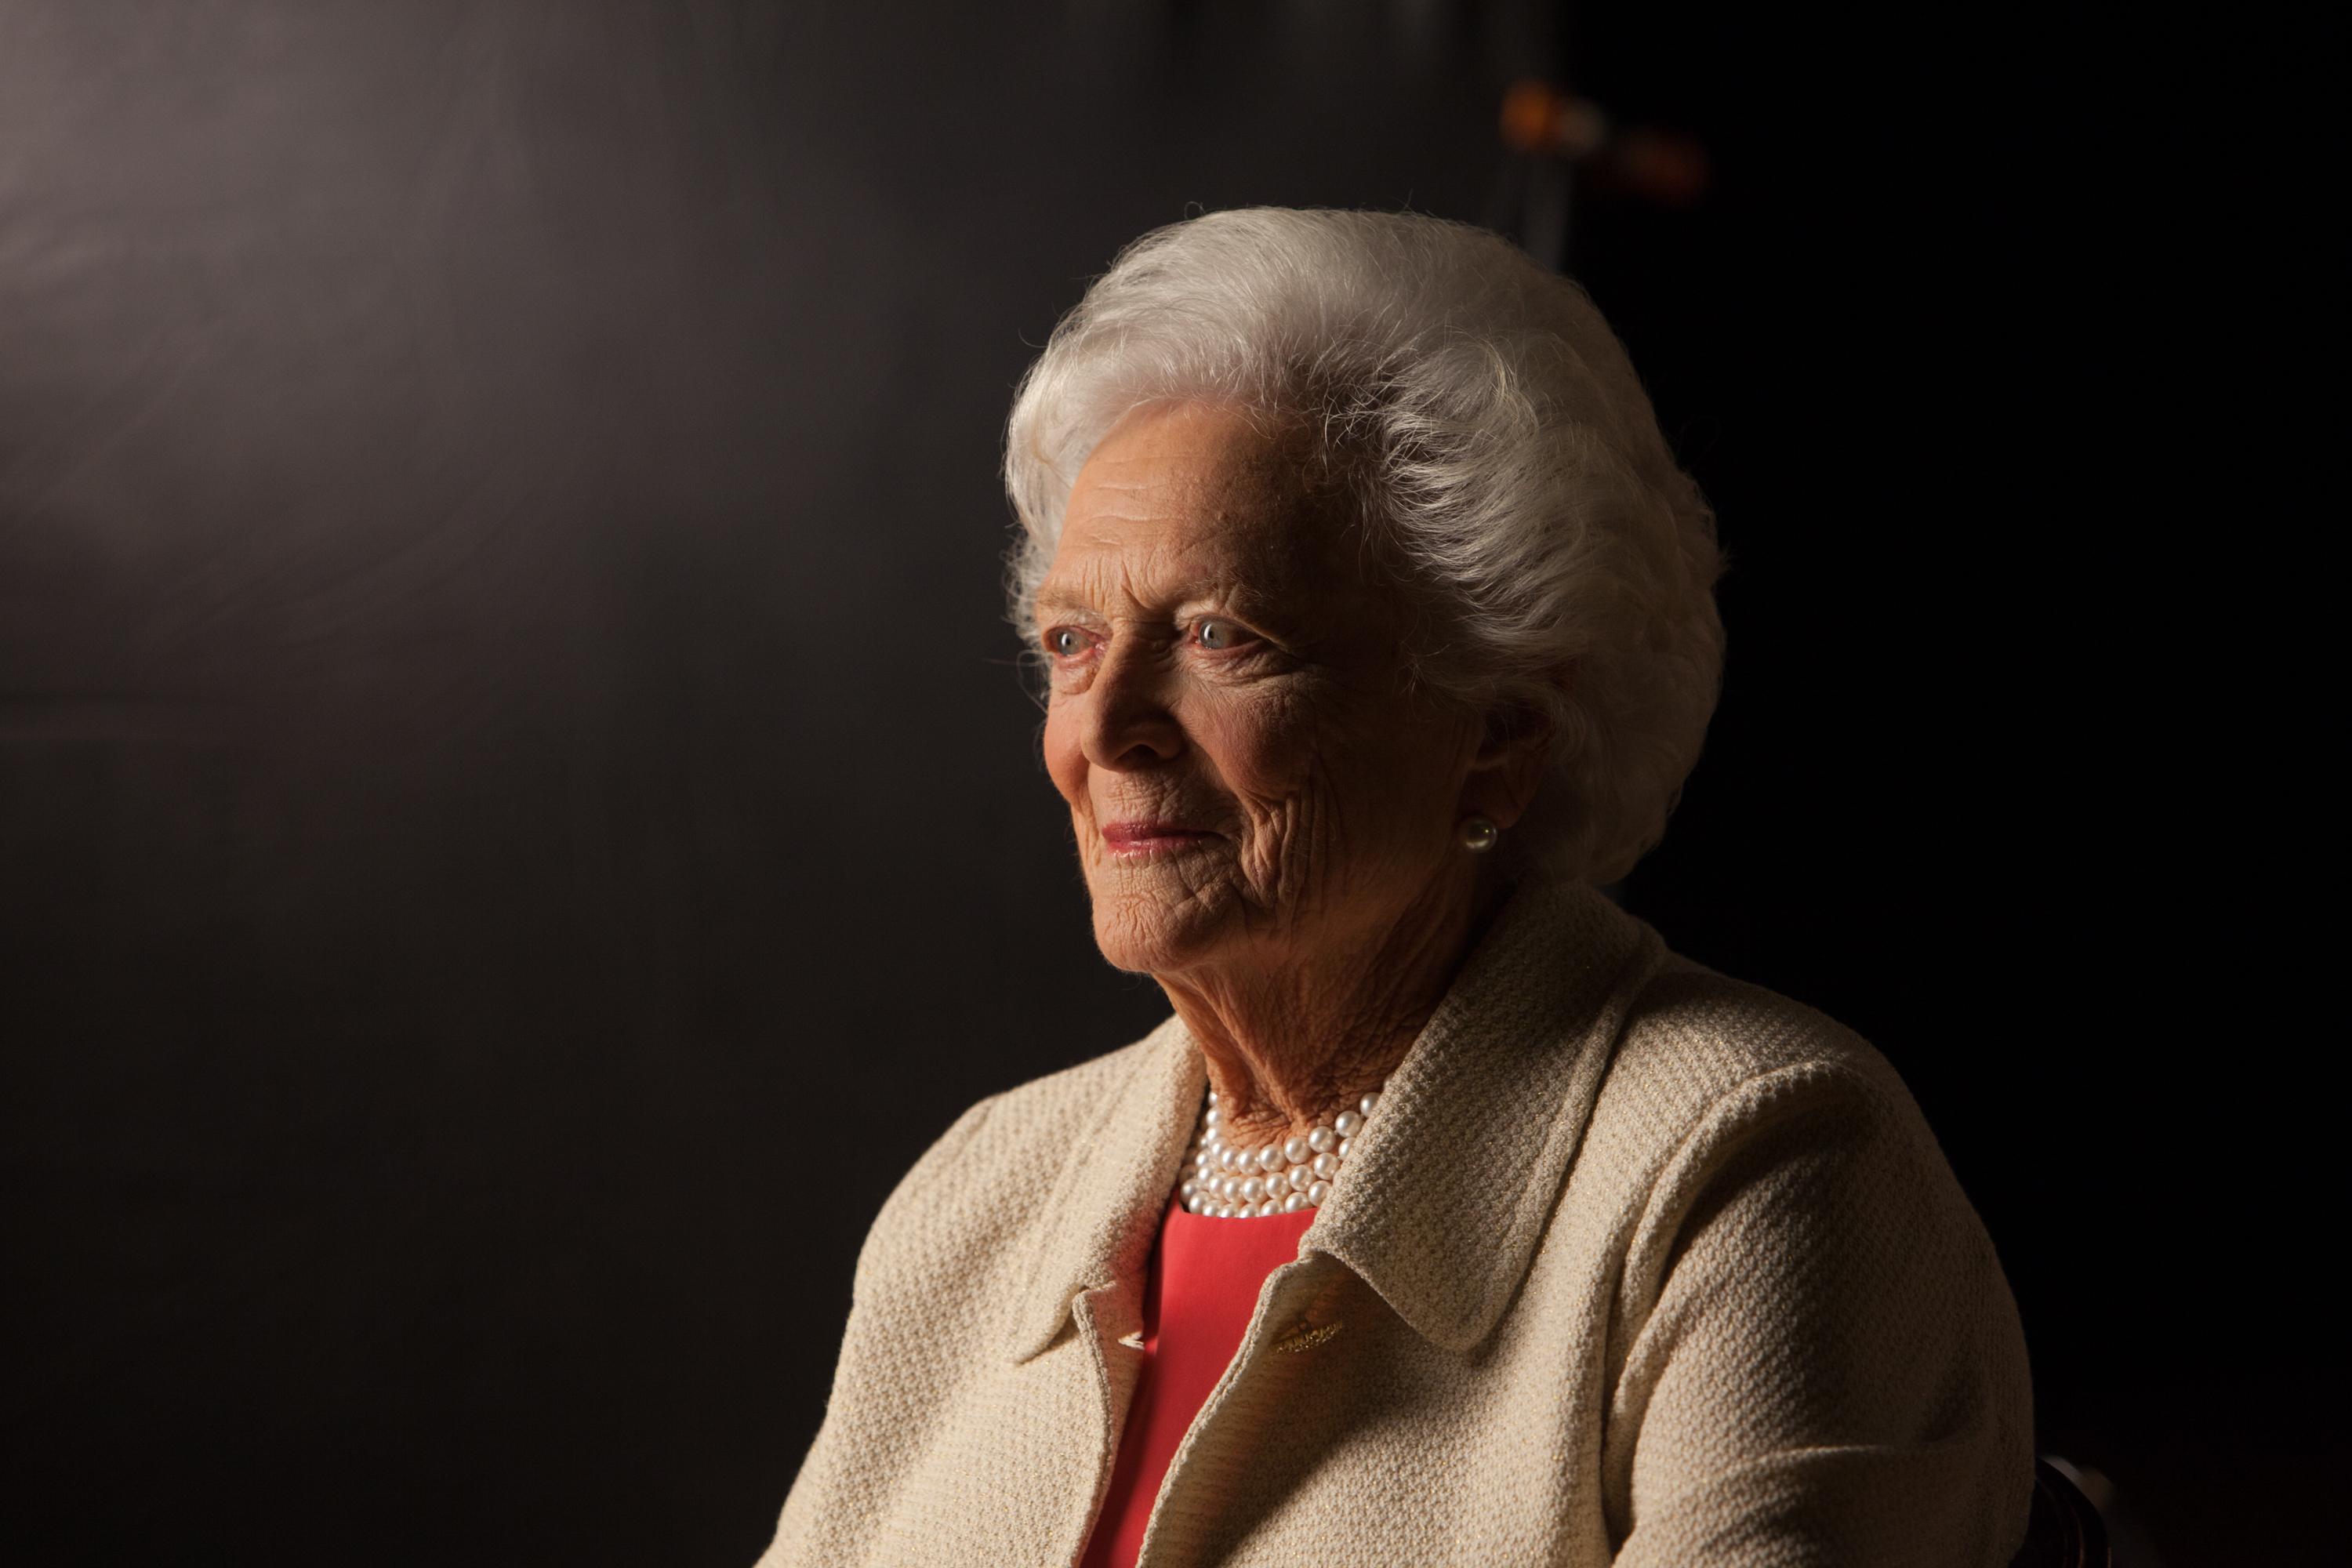 Former First Lady Barbara Bush is interviewed for 'The Presidents' Gatekeepers' project at the Bush Library, on Oct. 24, 2011, in College Station, Texas.